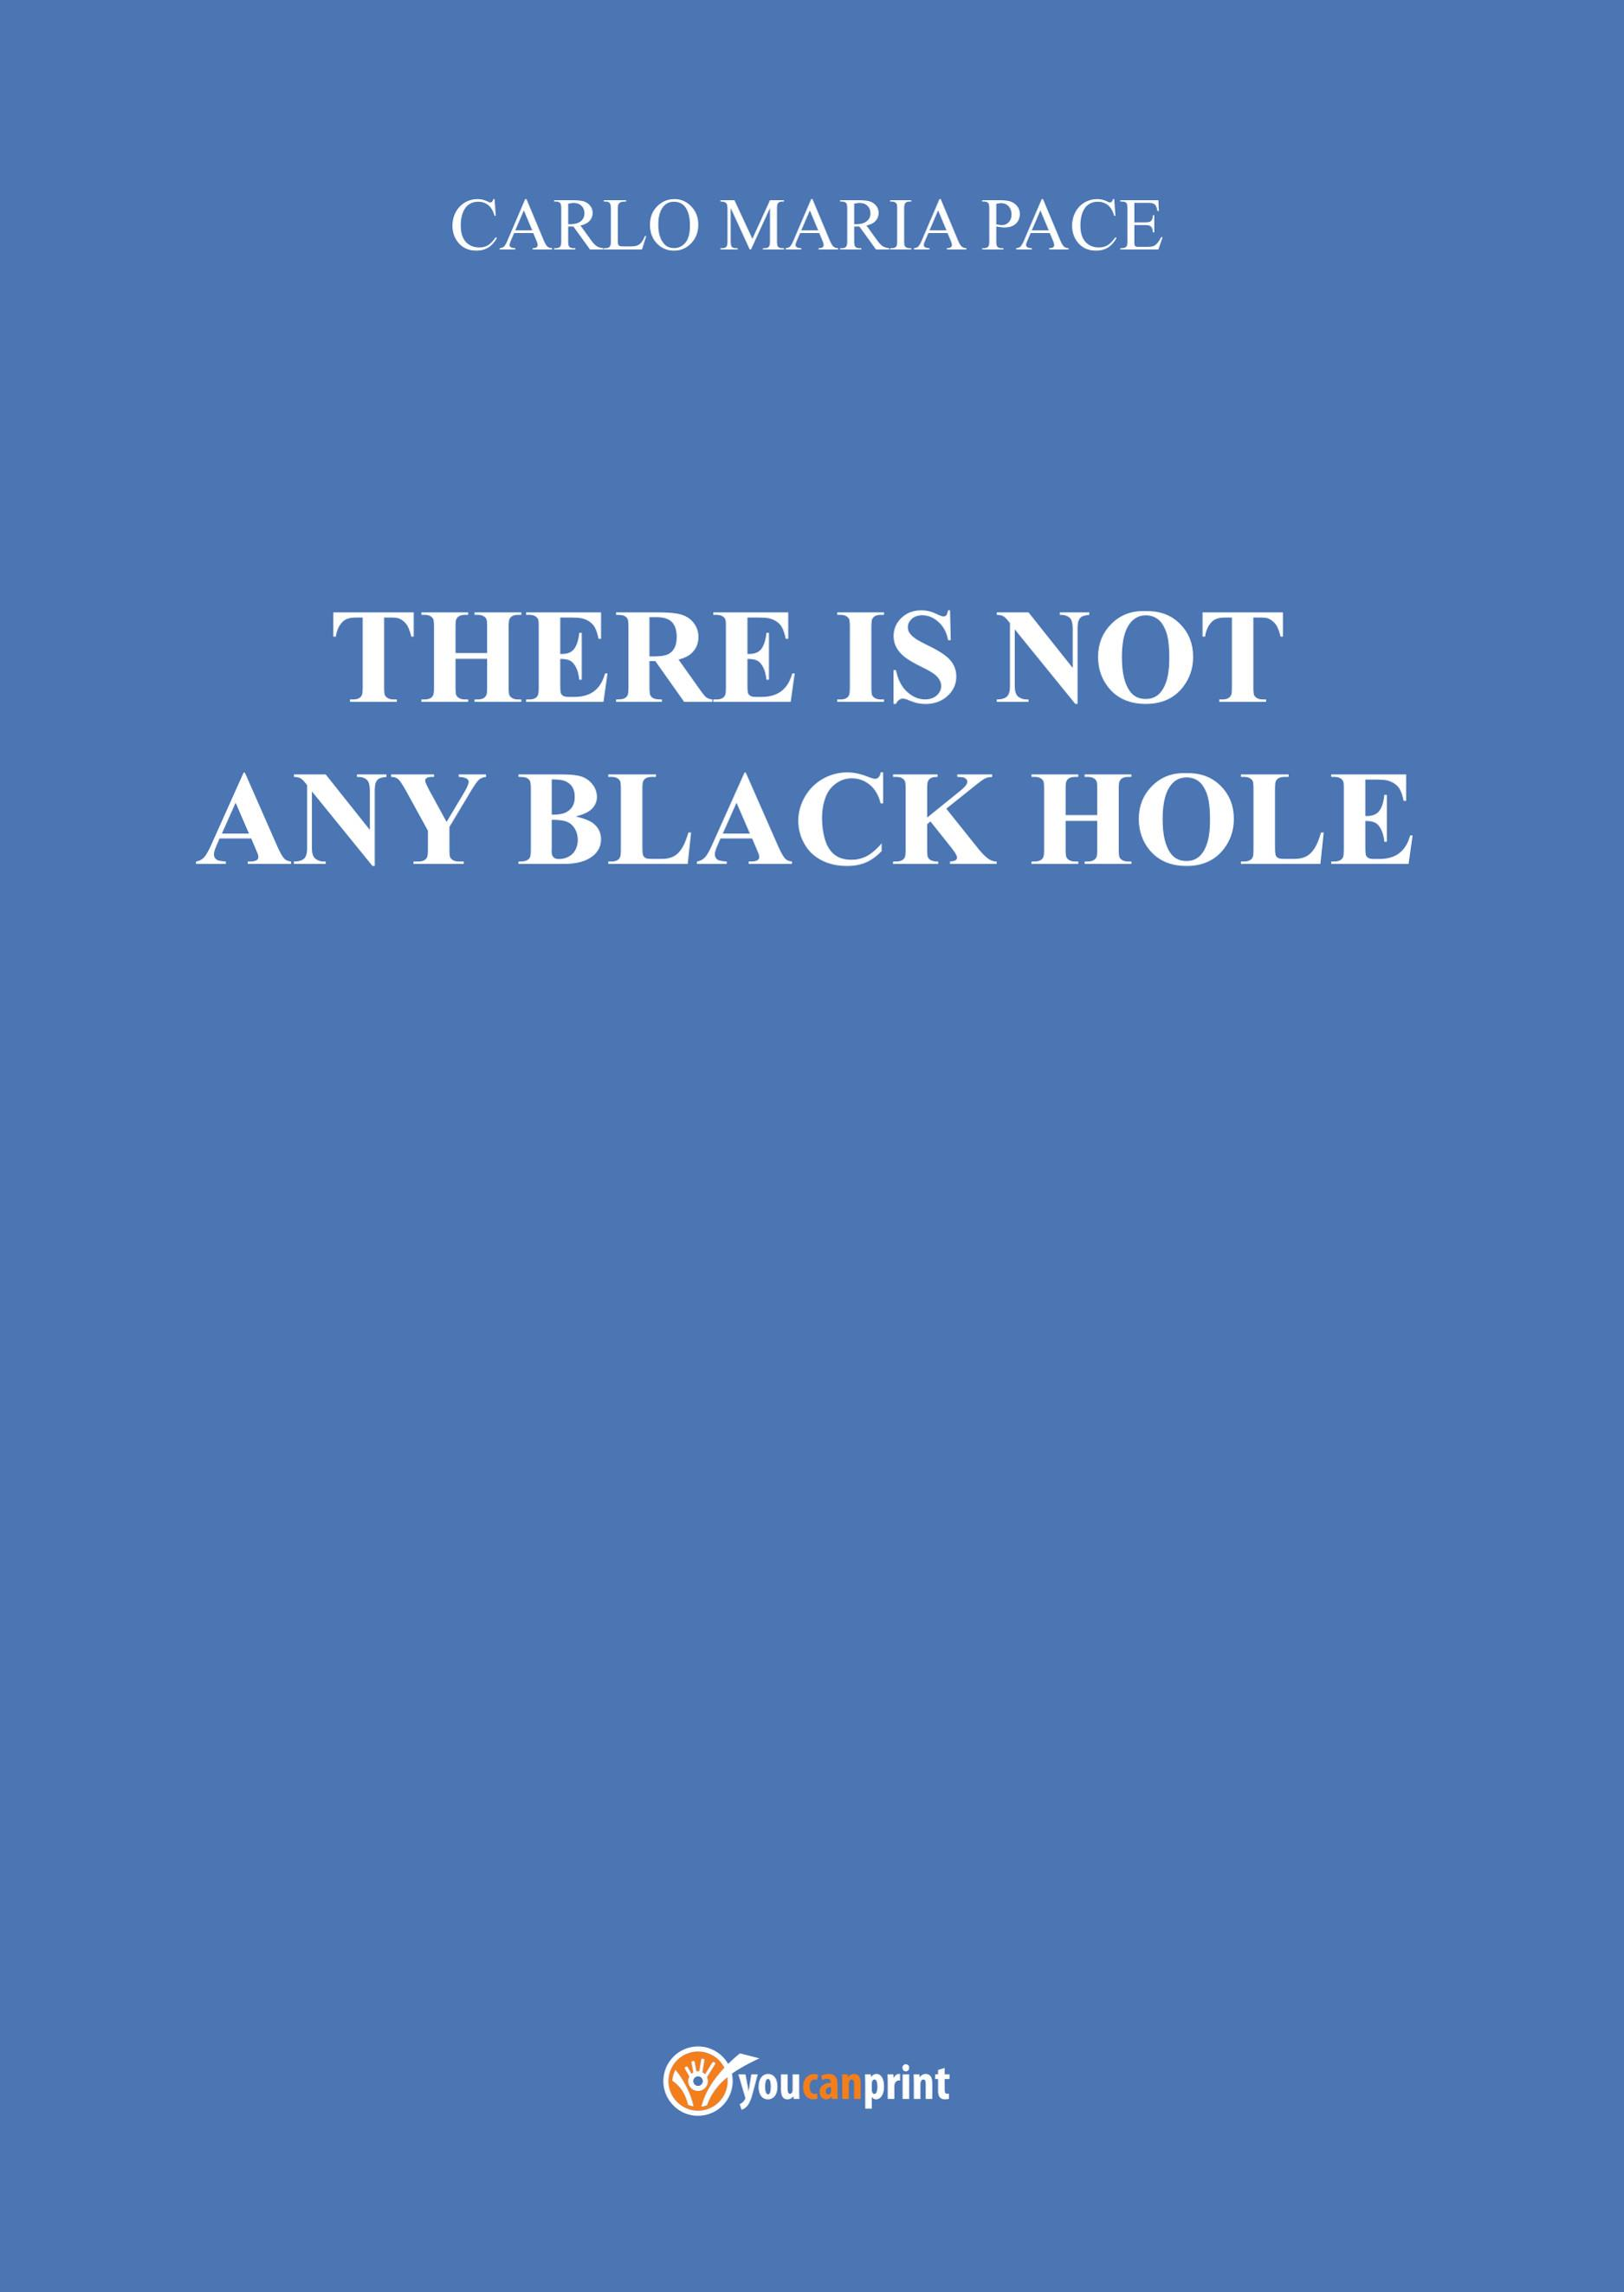 There is not any black hole